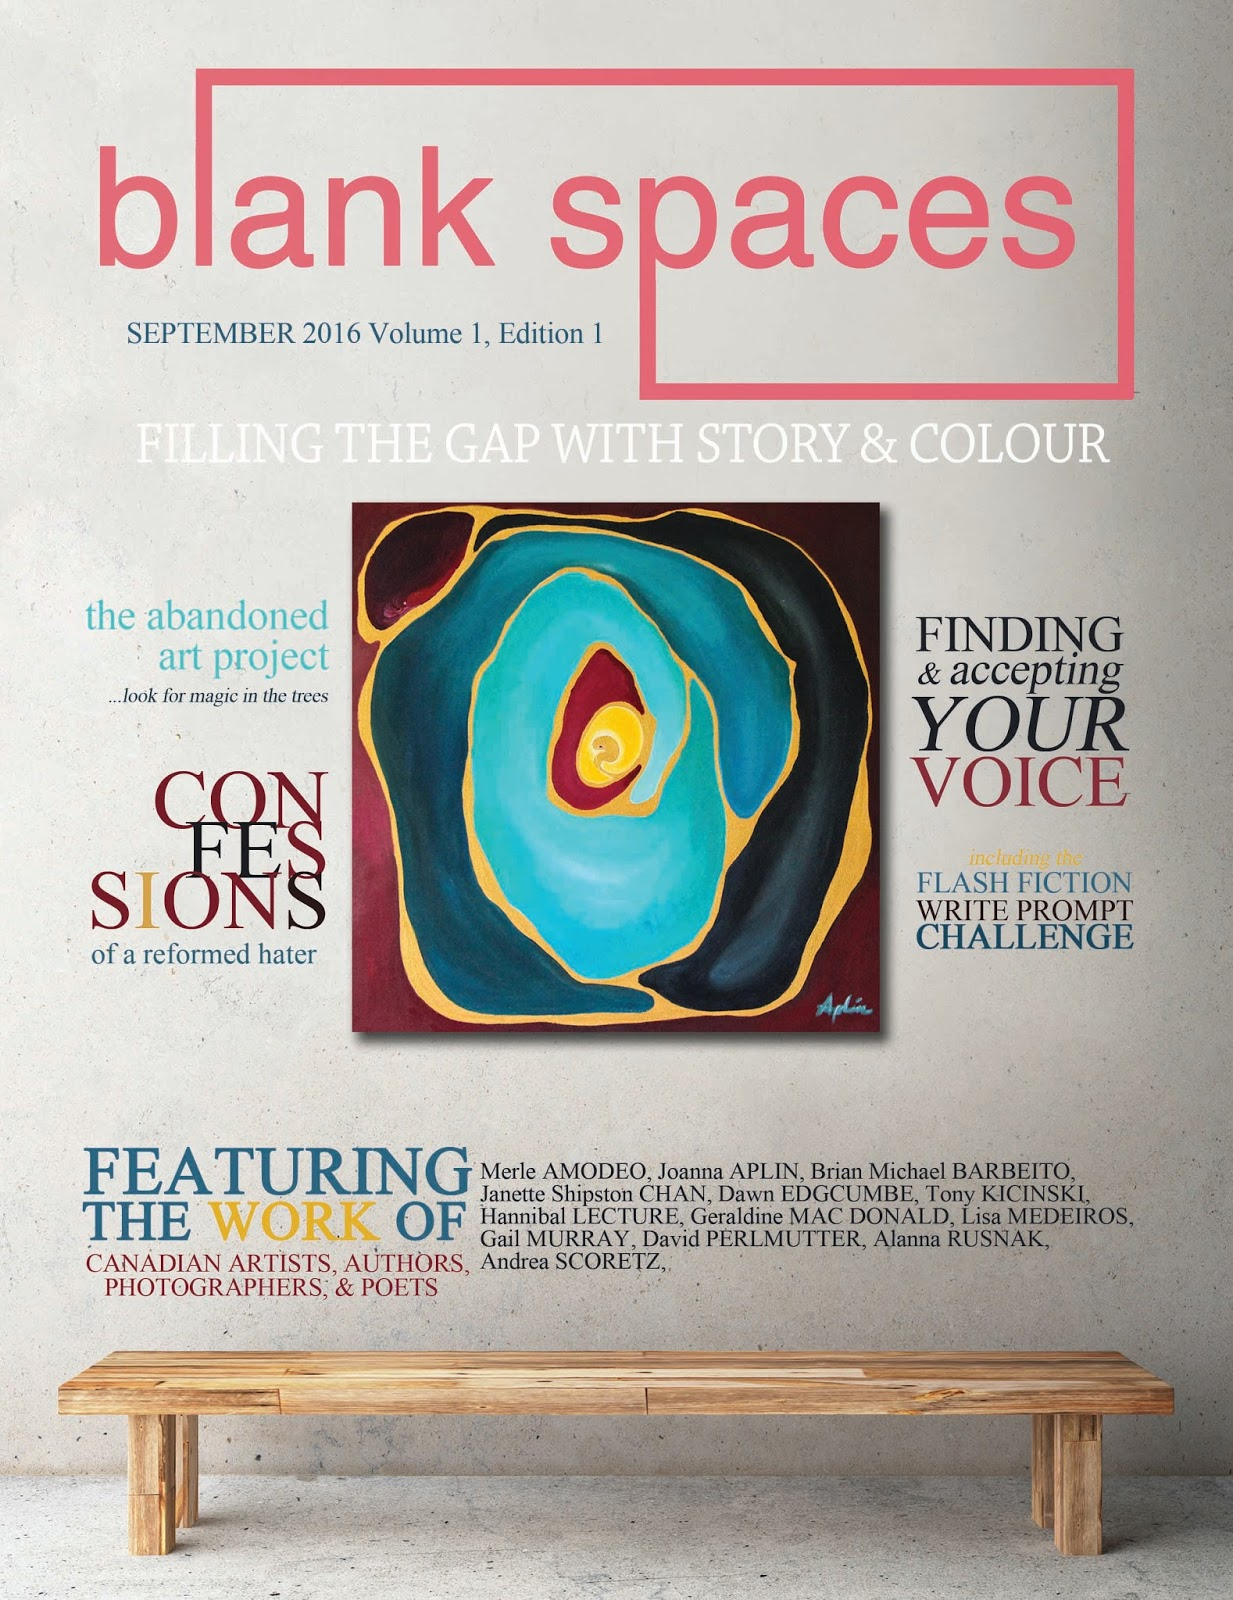 Our September 2016 Issue